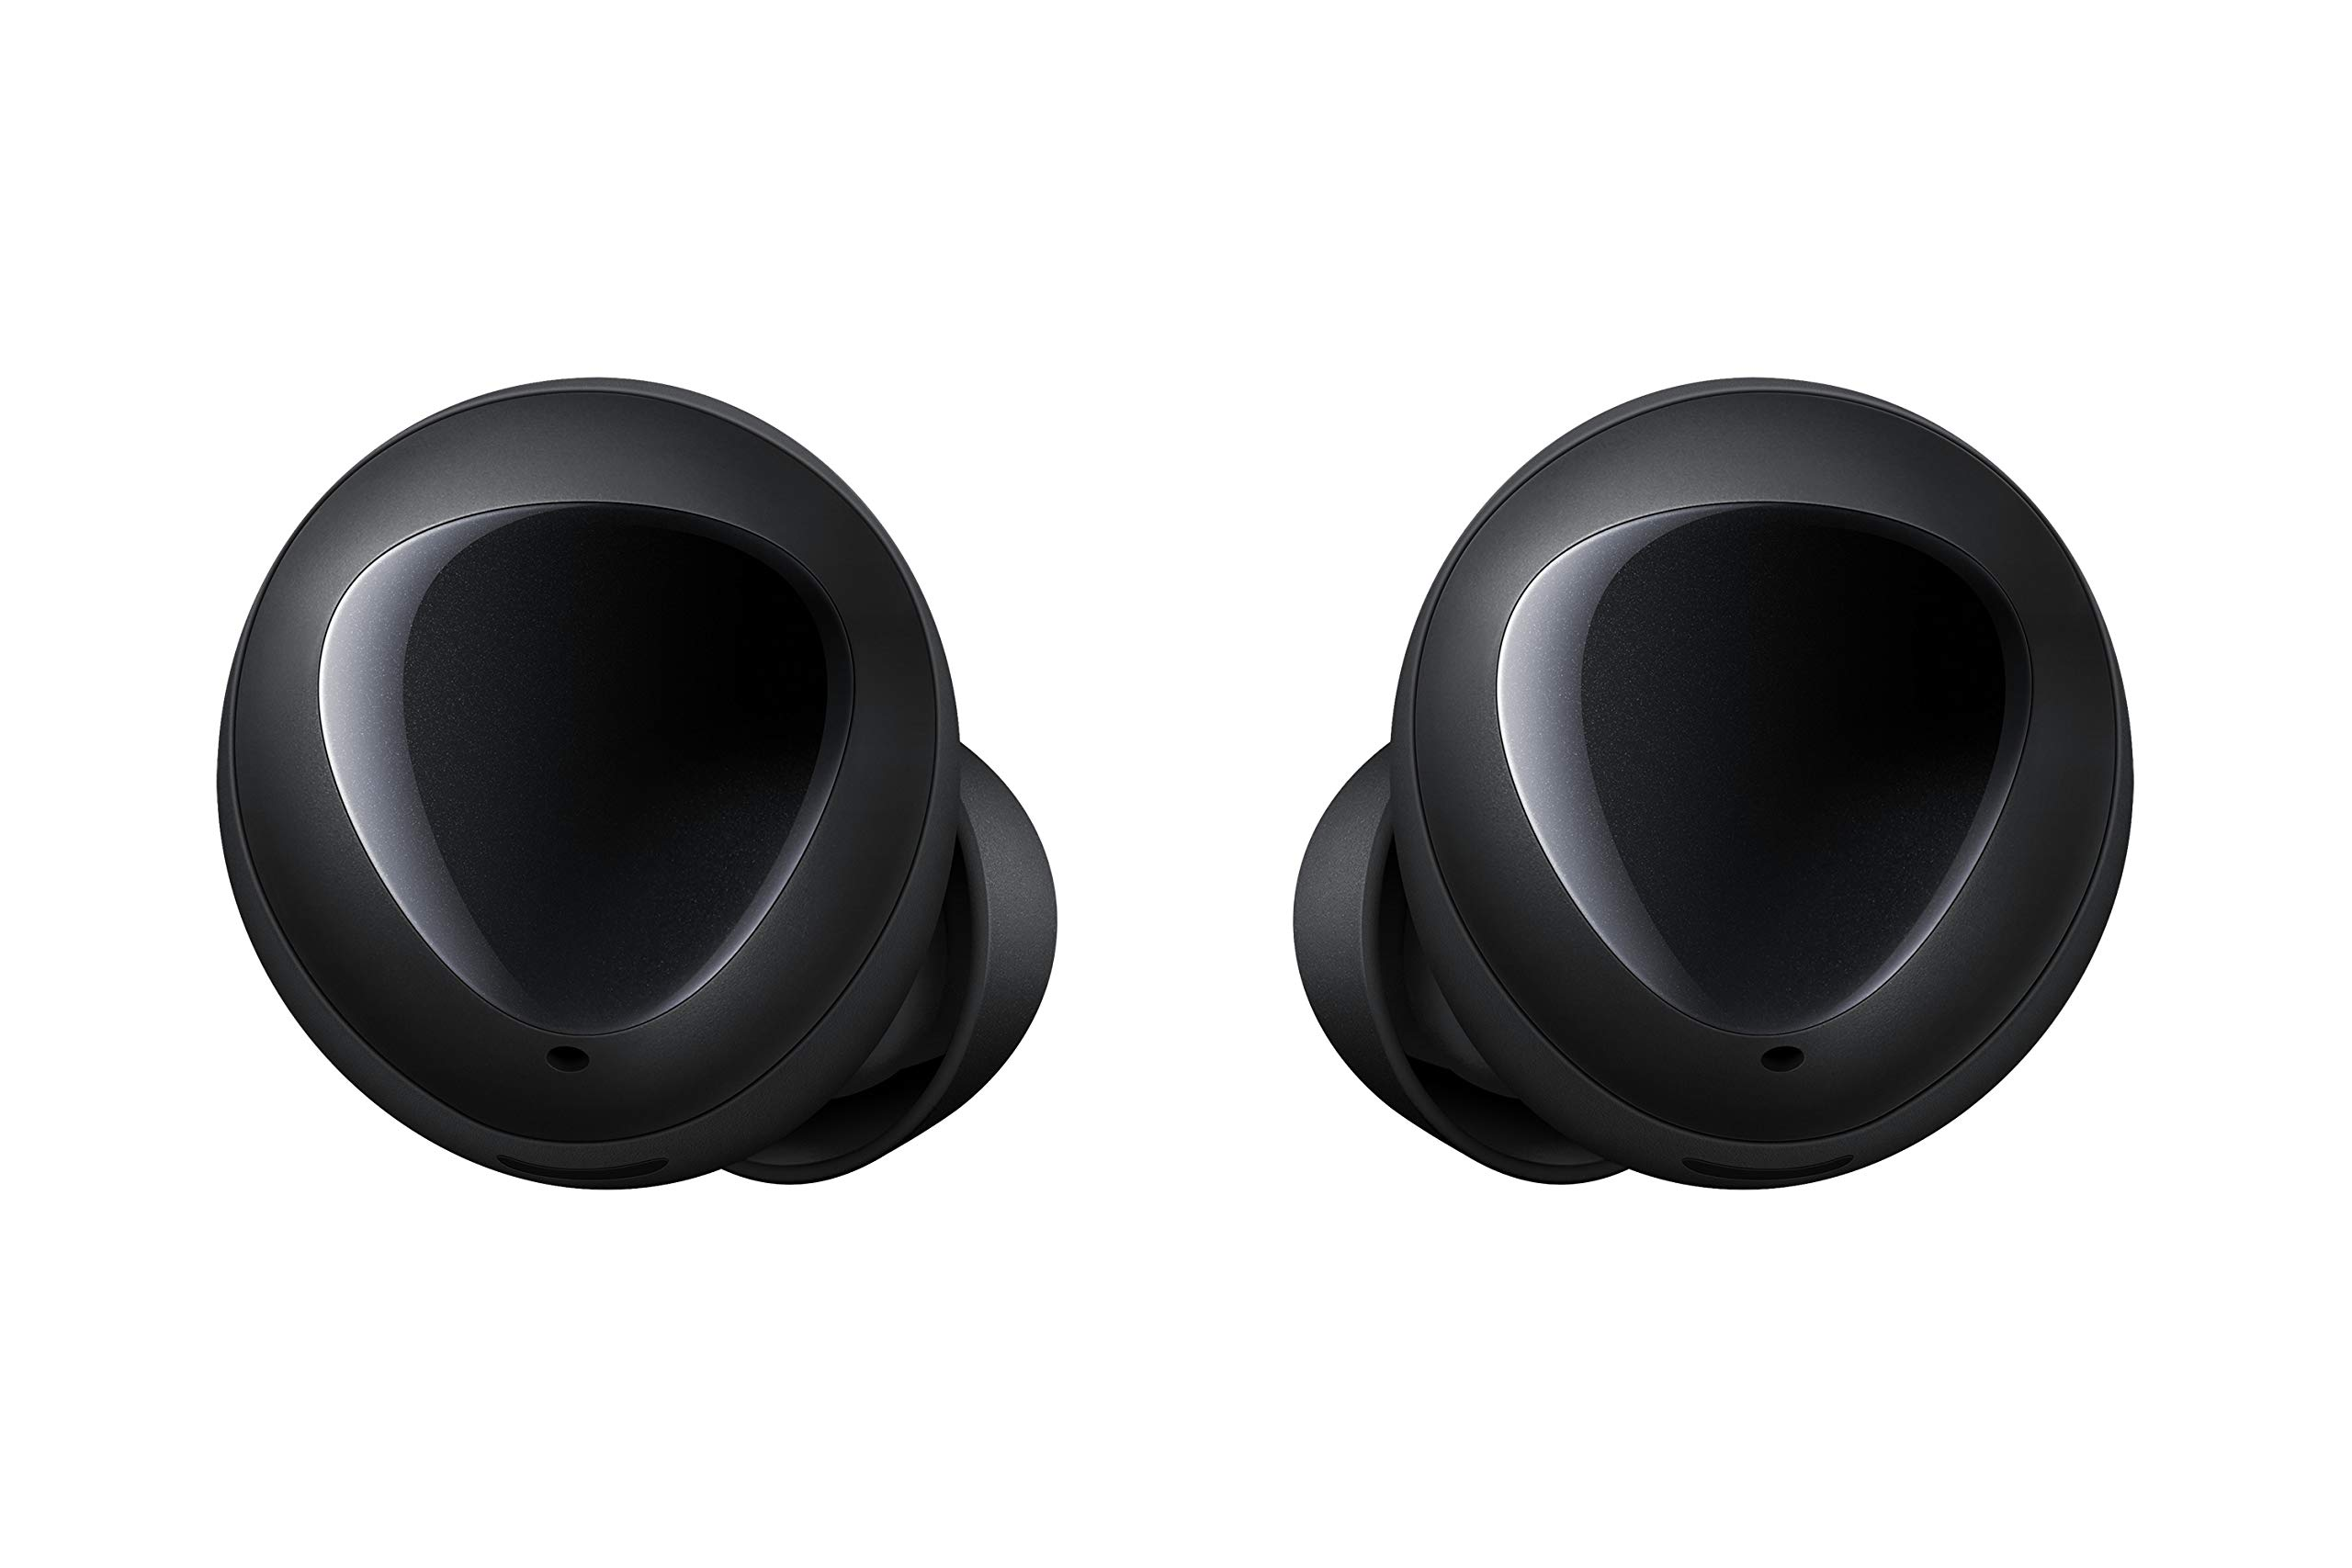 Samsung Galaxy Buds 2019, Bluetooth True Wireless Earbuds (Wireless Charging Case Included), Black - (International Version)